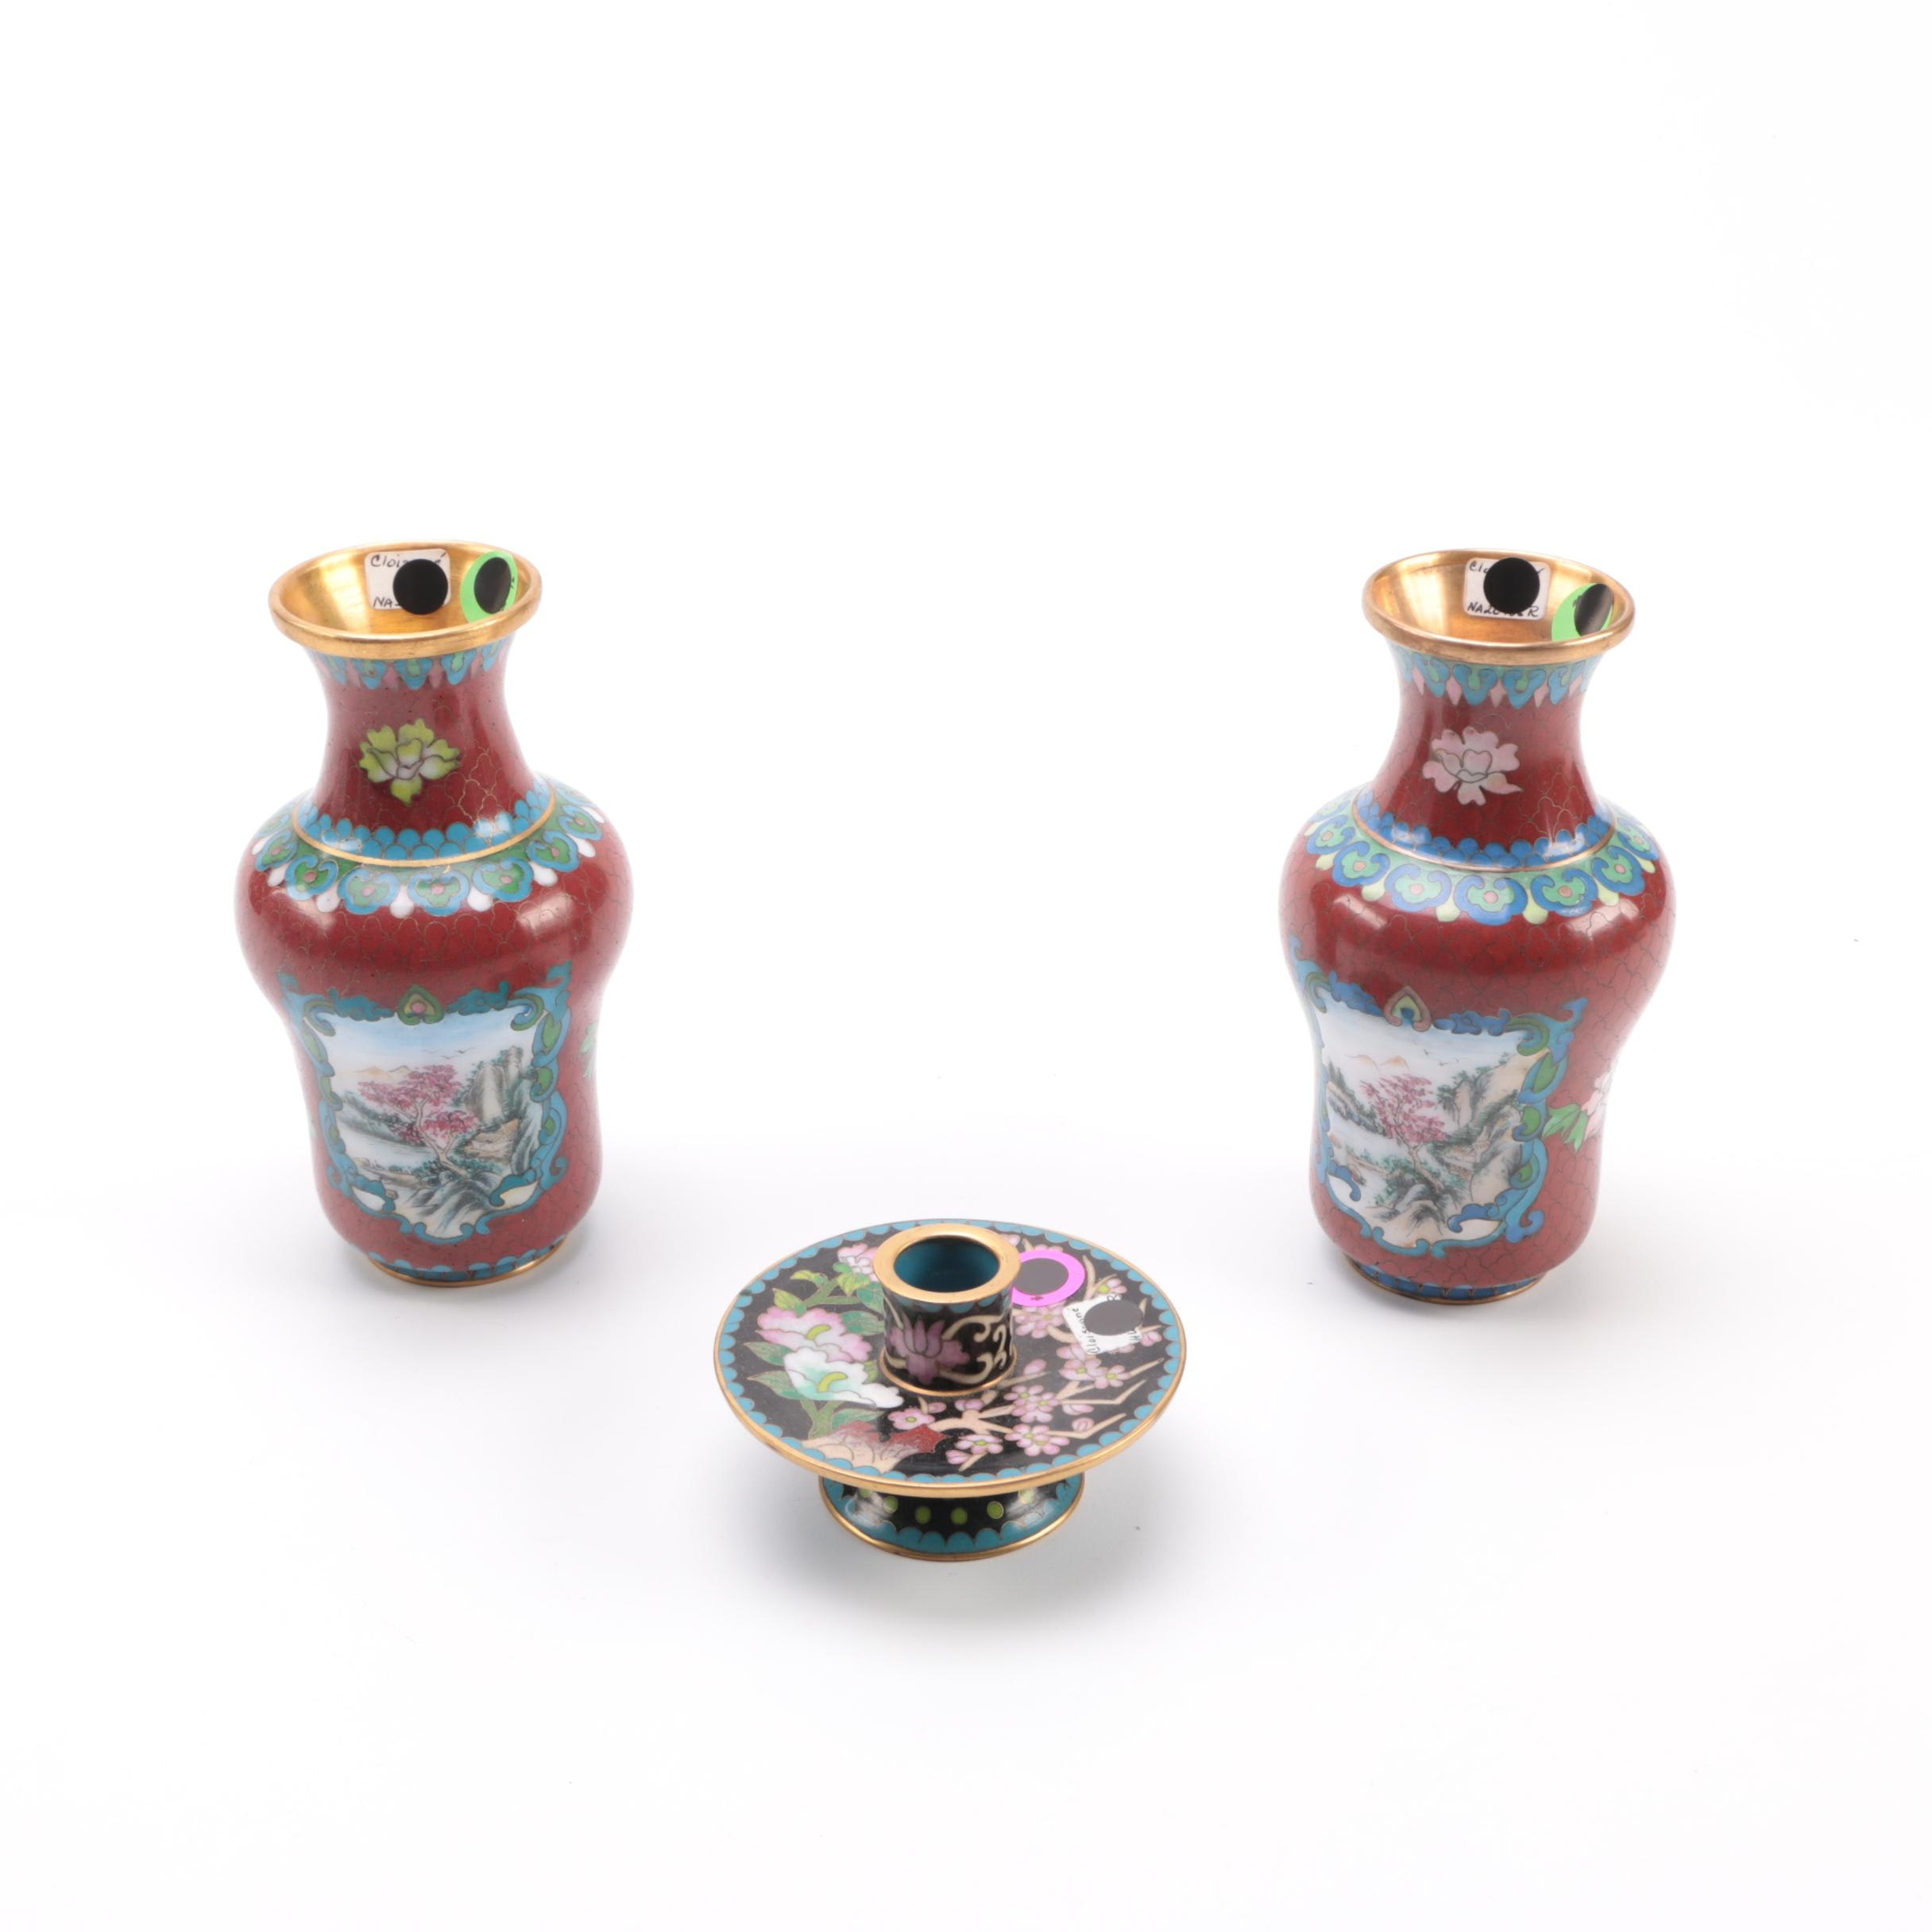 Cloisonné Vases and Candle Holder